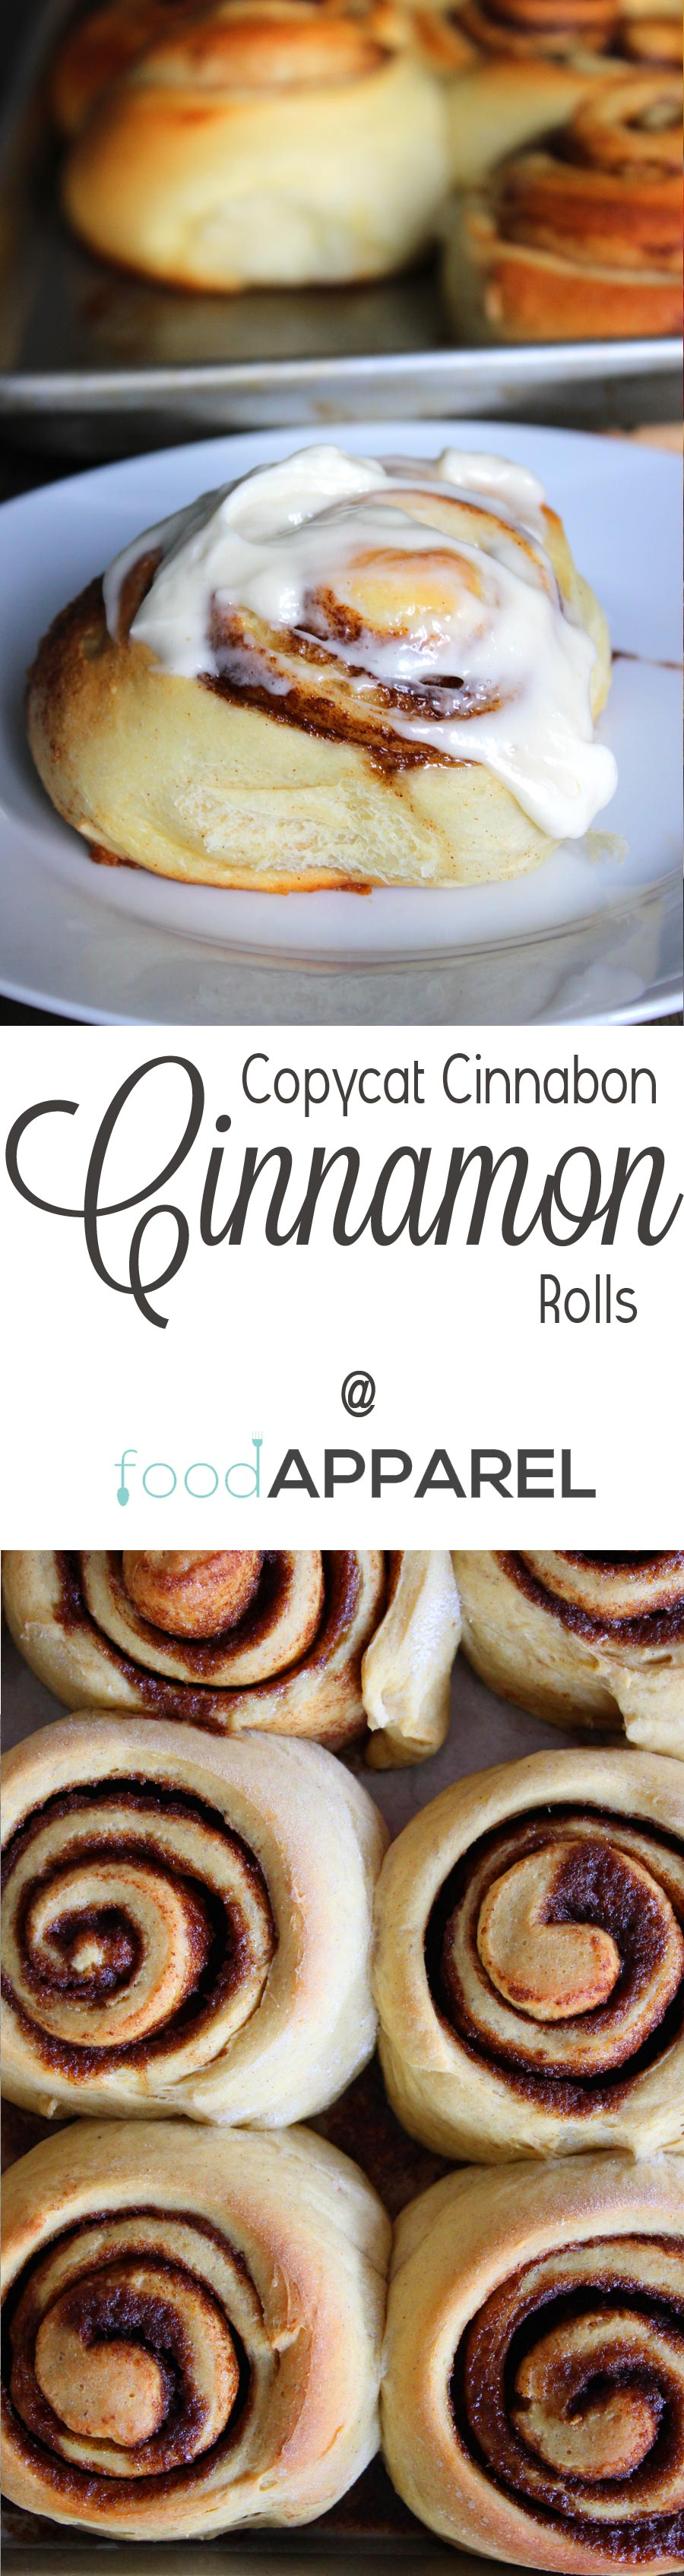 Copycat Cinnabon Cinnamon Rolls! Except, here's the secret - they are actually BETTER!